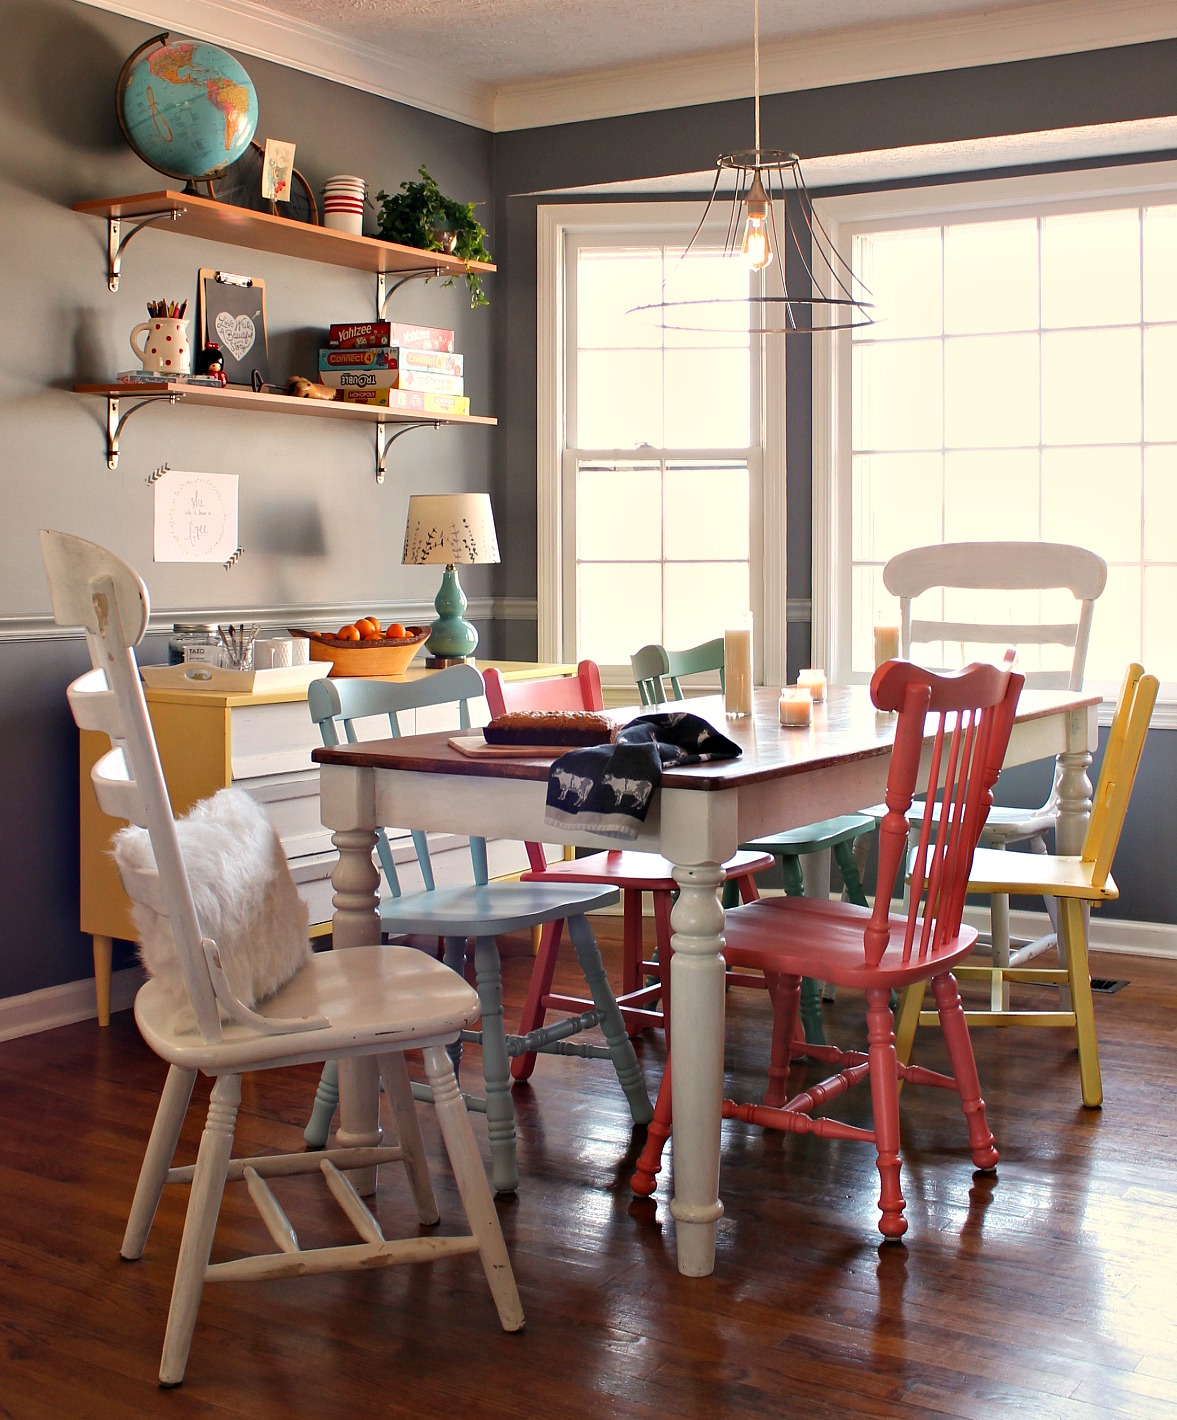 the little farm diary  Decorating With Color  a dining room story  There s not anything exceptional about our dining room  it s just like  yours  a place to gather for meals with family and friends